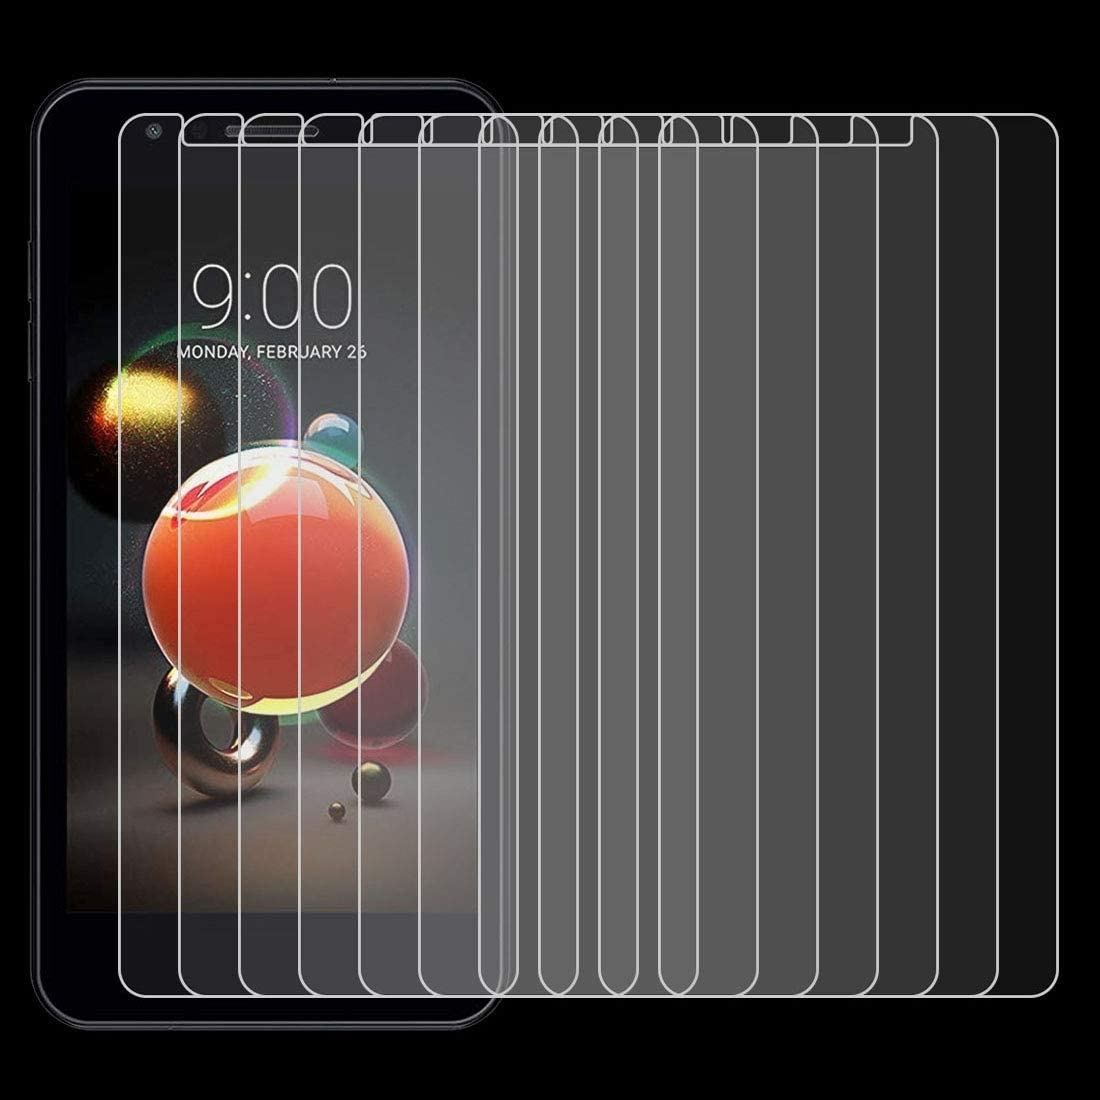 ZYS Screen Protector 100 PCS 0.26mm 9H 2.5D Tempered Glass Film for LG K9